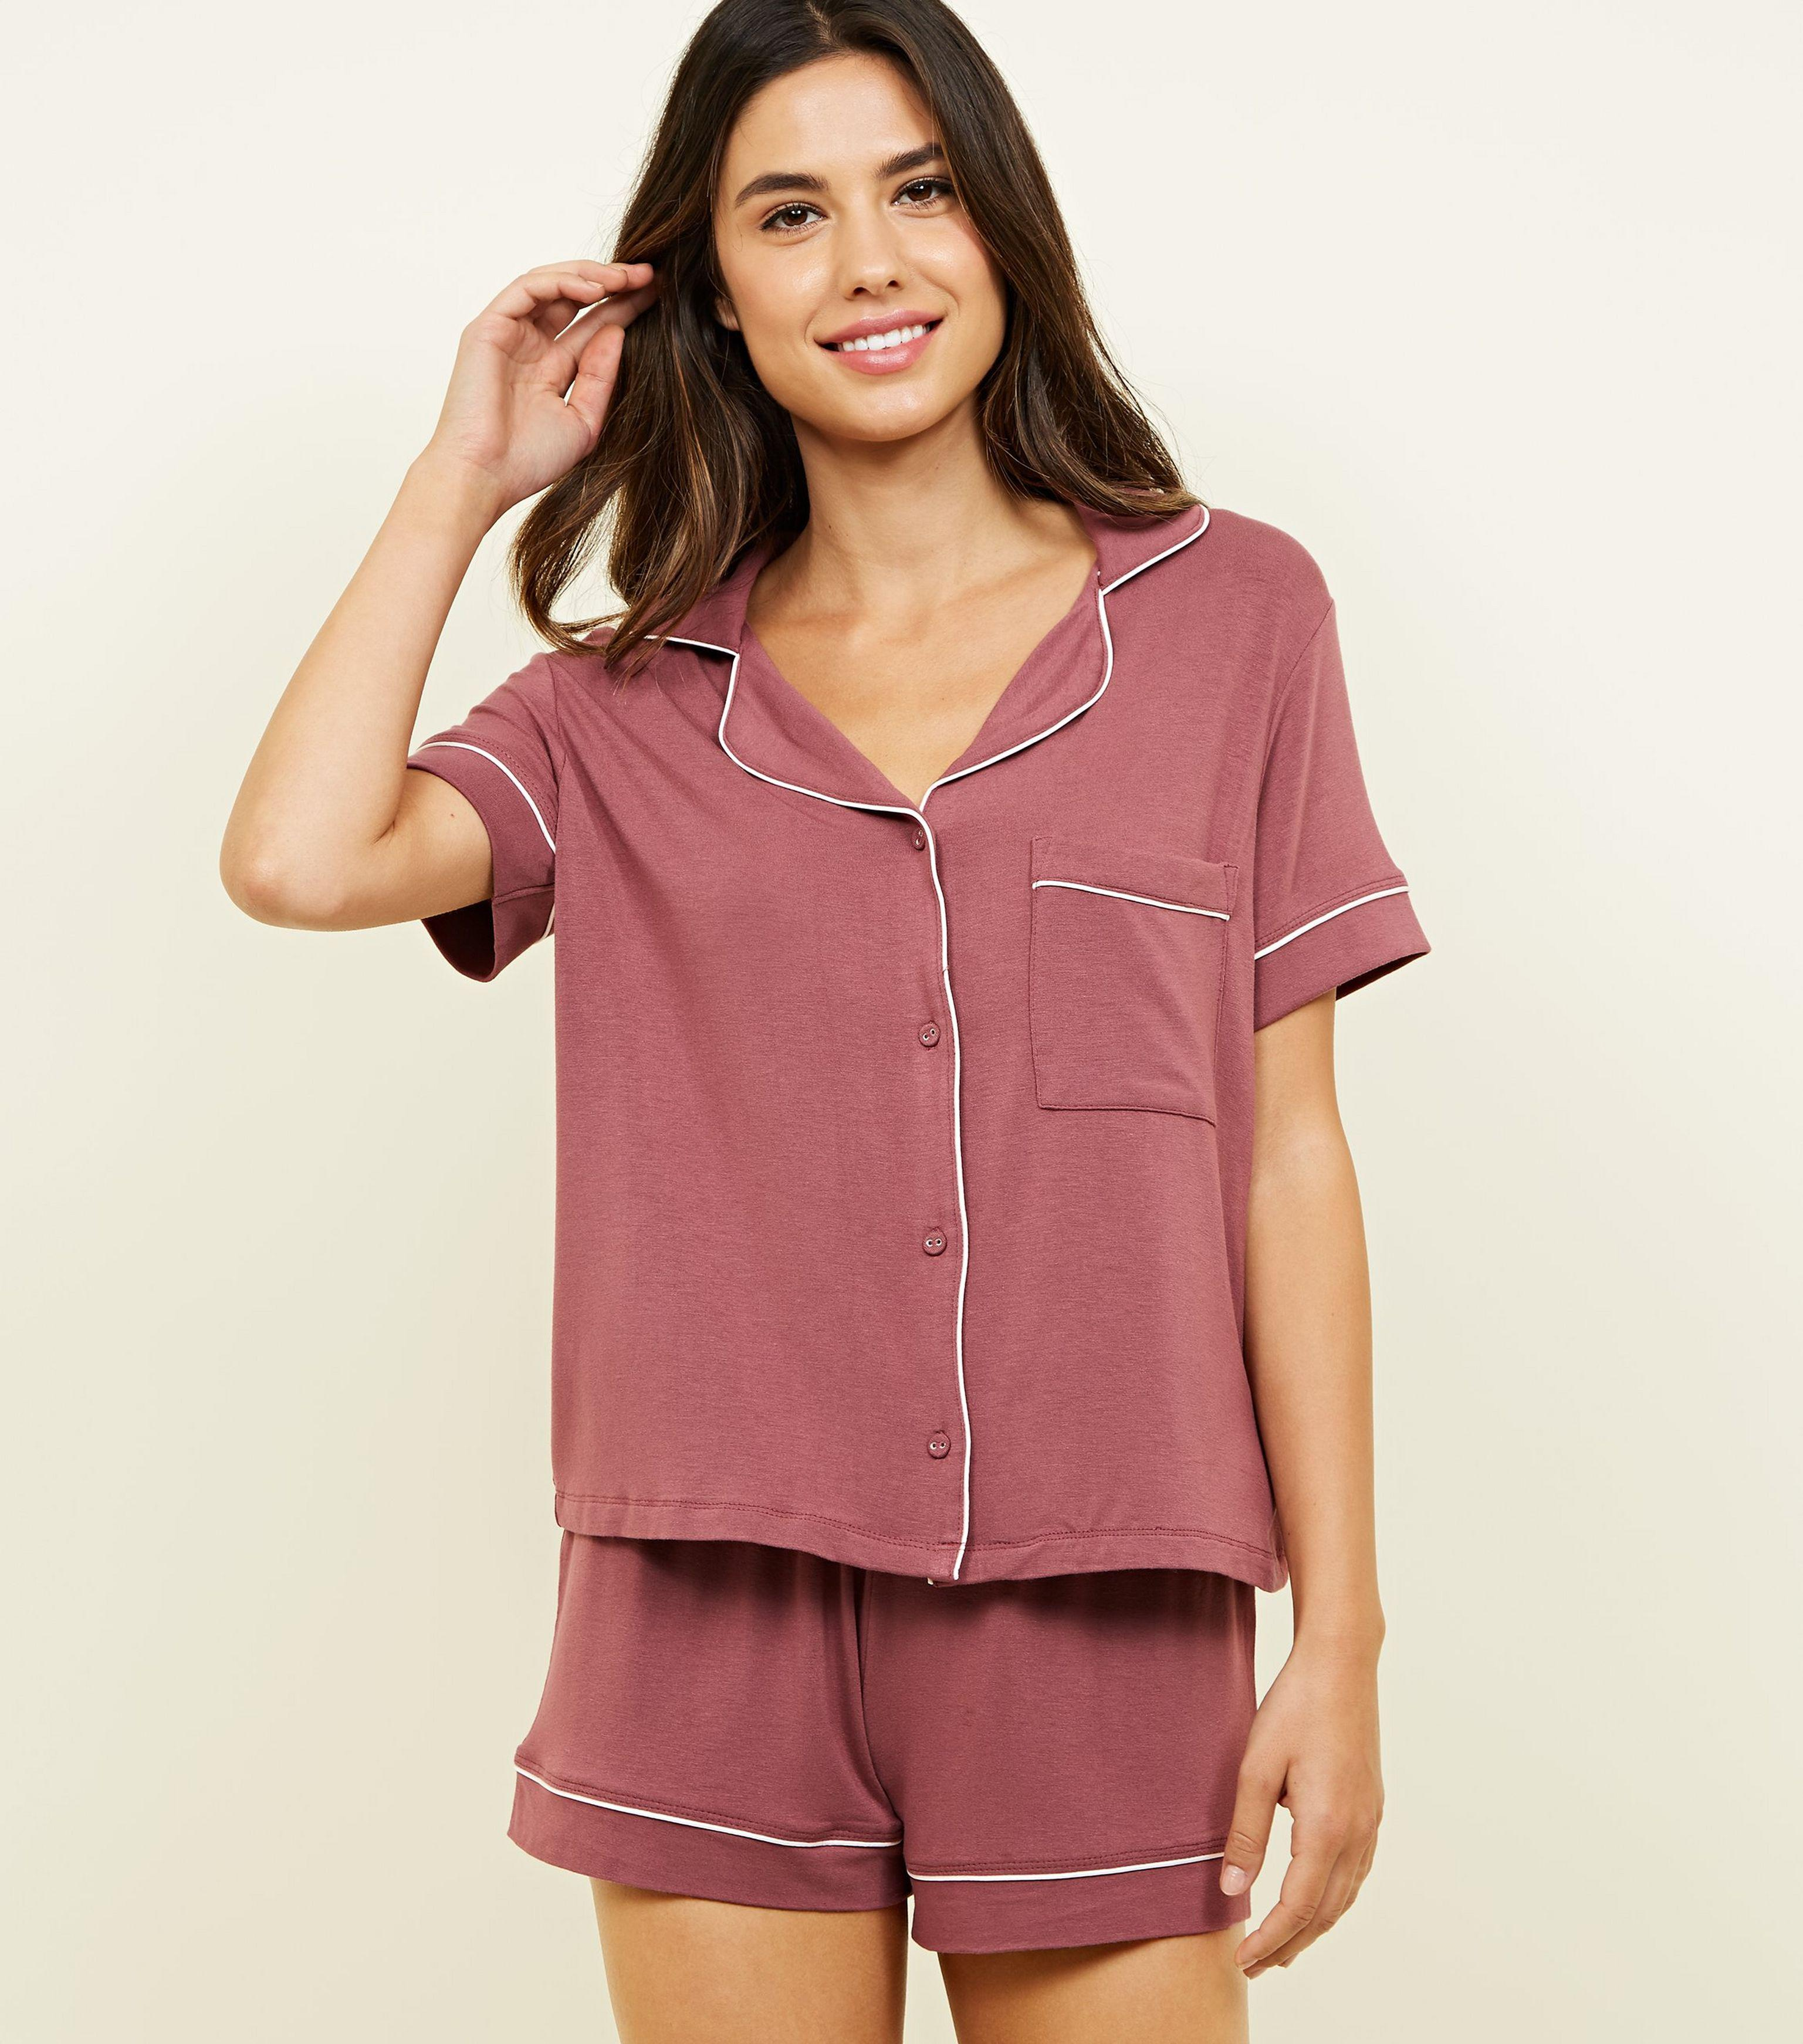 975a5e3cba2 New Look Mid Pink Revere Collar Pyjama Set in Pink - Lyst